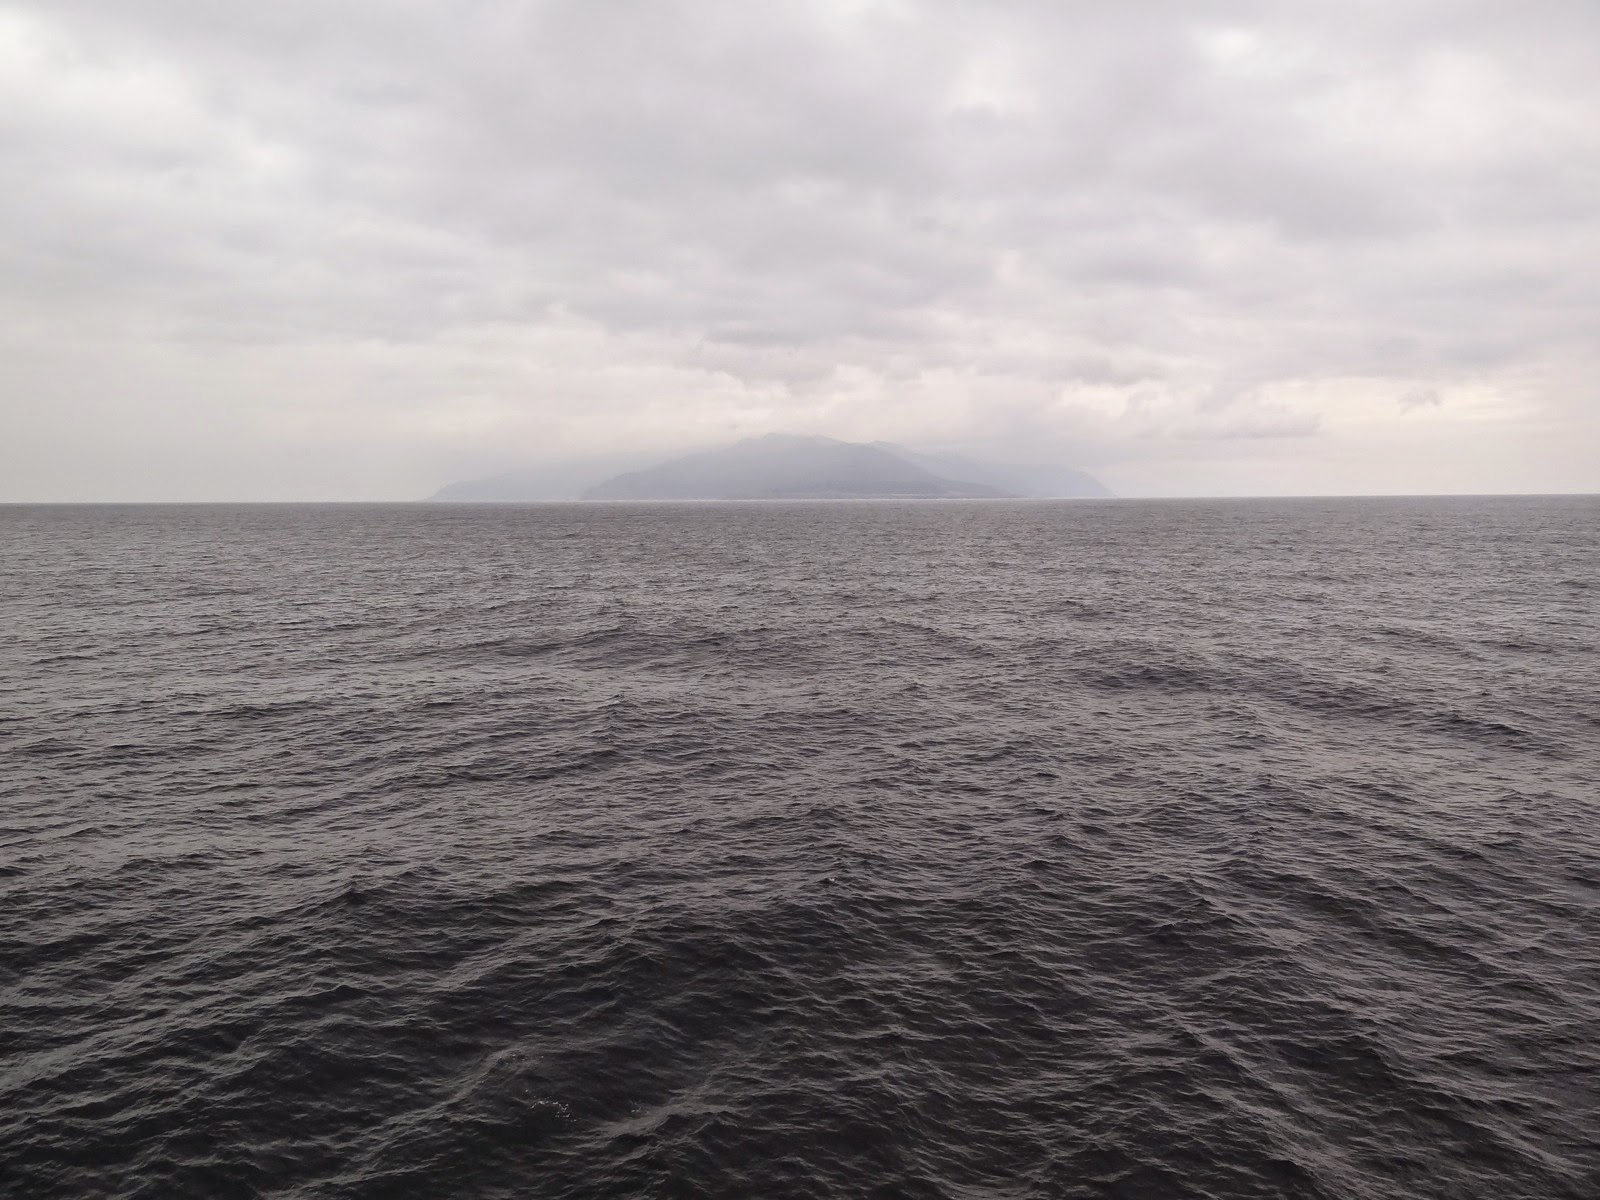 Officially in the Sea of Okhotsk